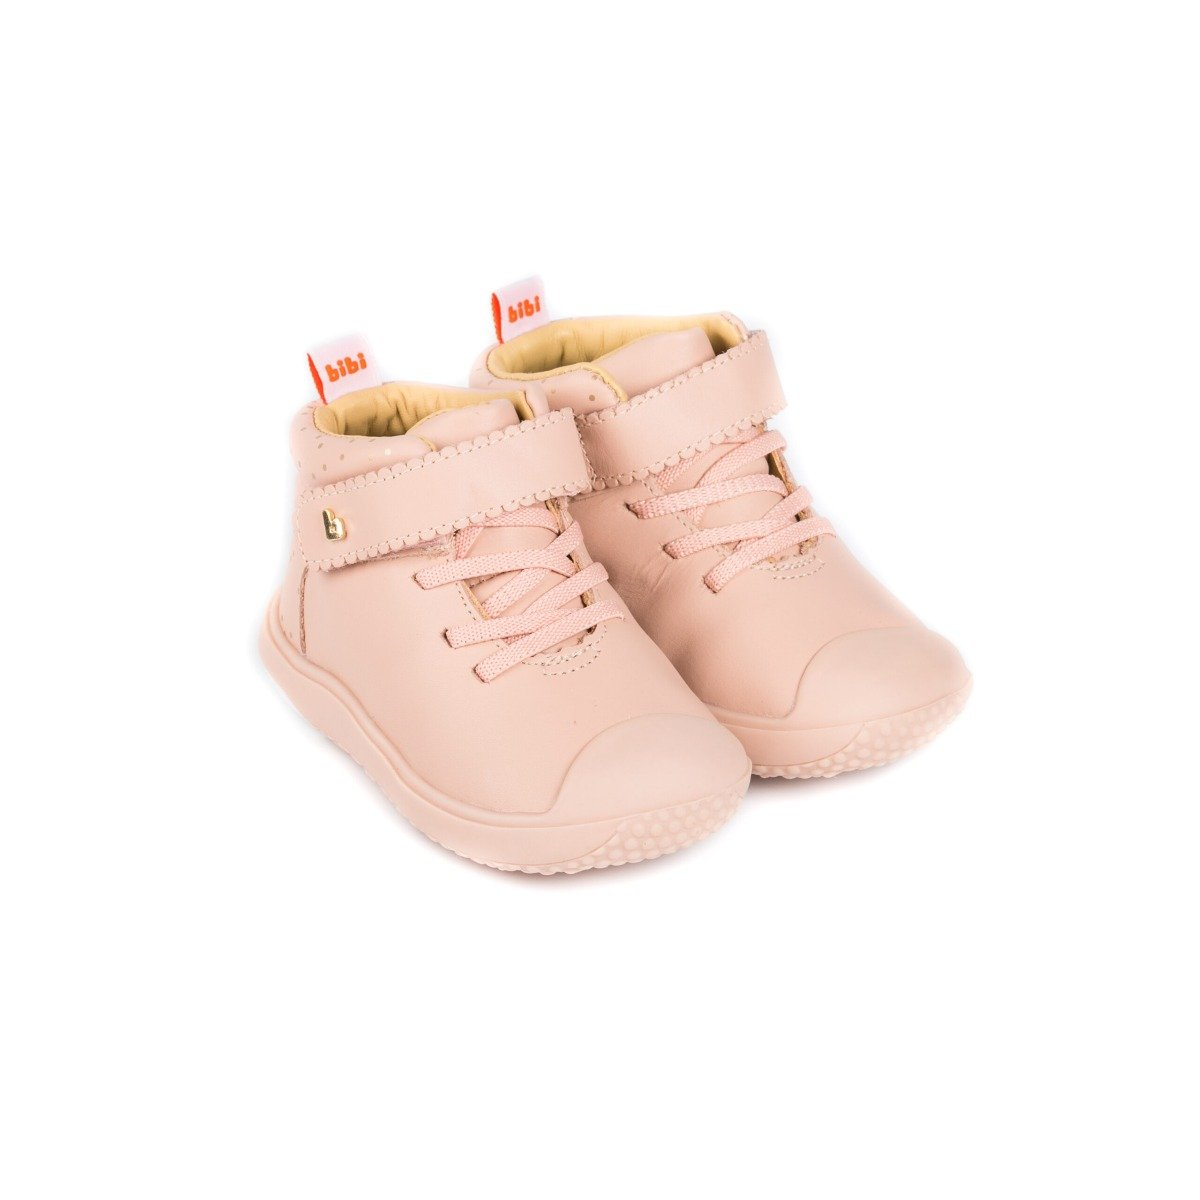 Ghete Bibi Shoes Prewalker, Roz